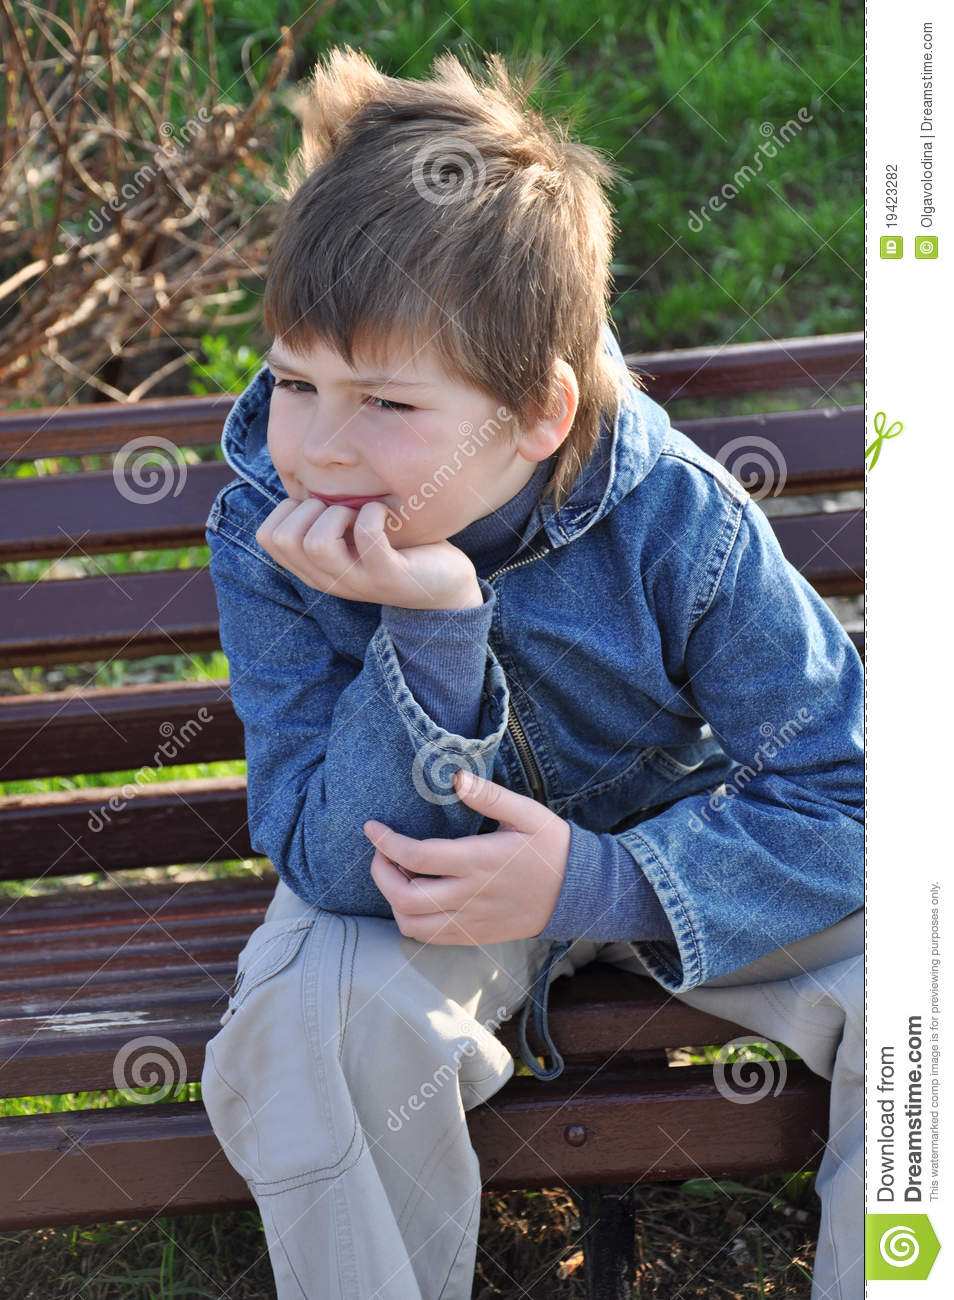 Pensive Boy Sitting On A Park Bench Stock Photography